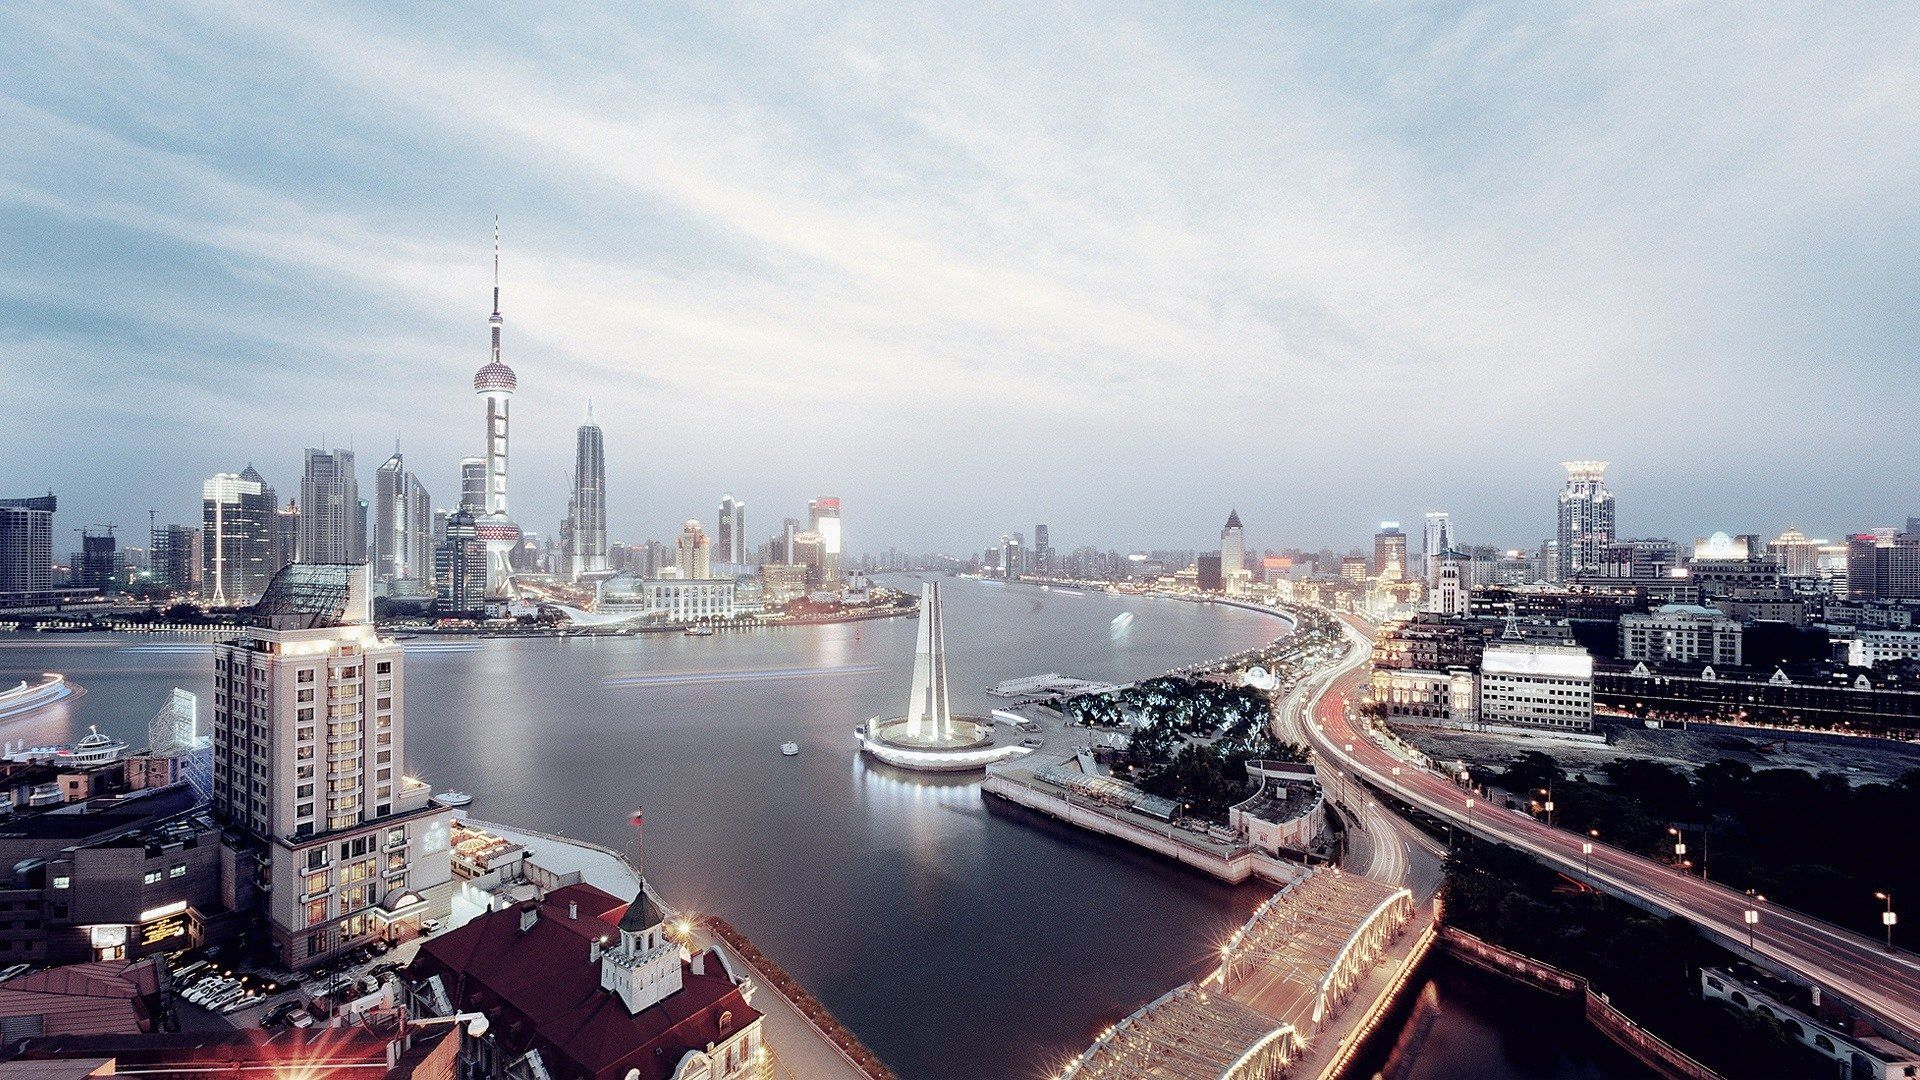 http://hdwallpapersdesktop.com/wallpapers/wp-content/uploads/uncategorized/08/22/shanghai-skyline-1920x1080.jpg